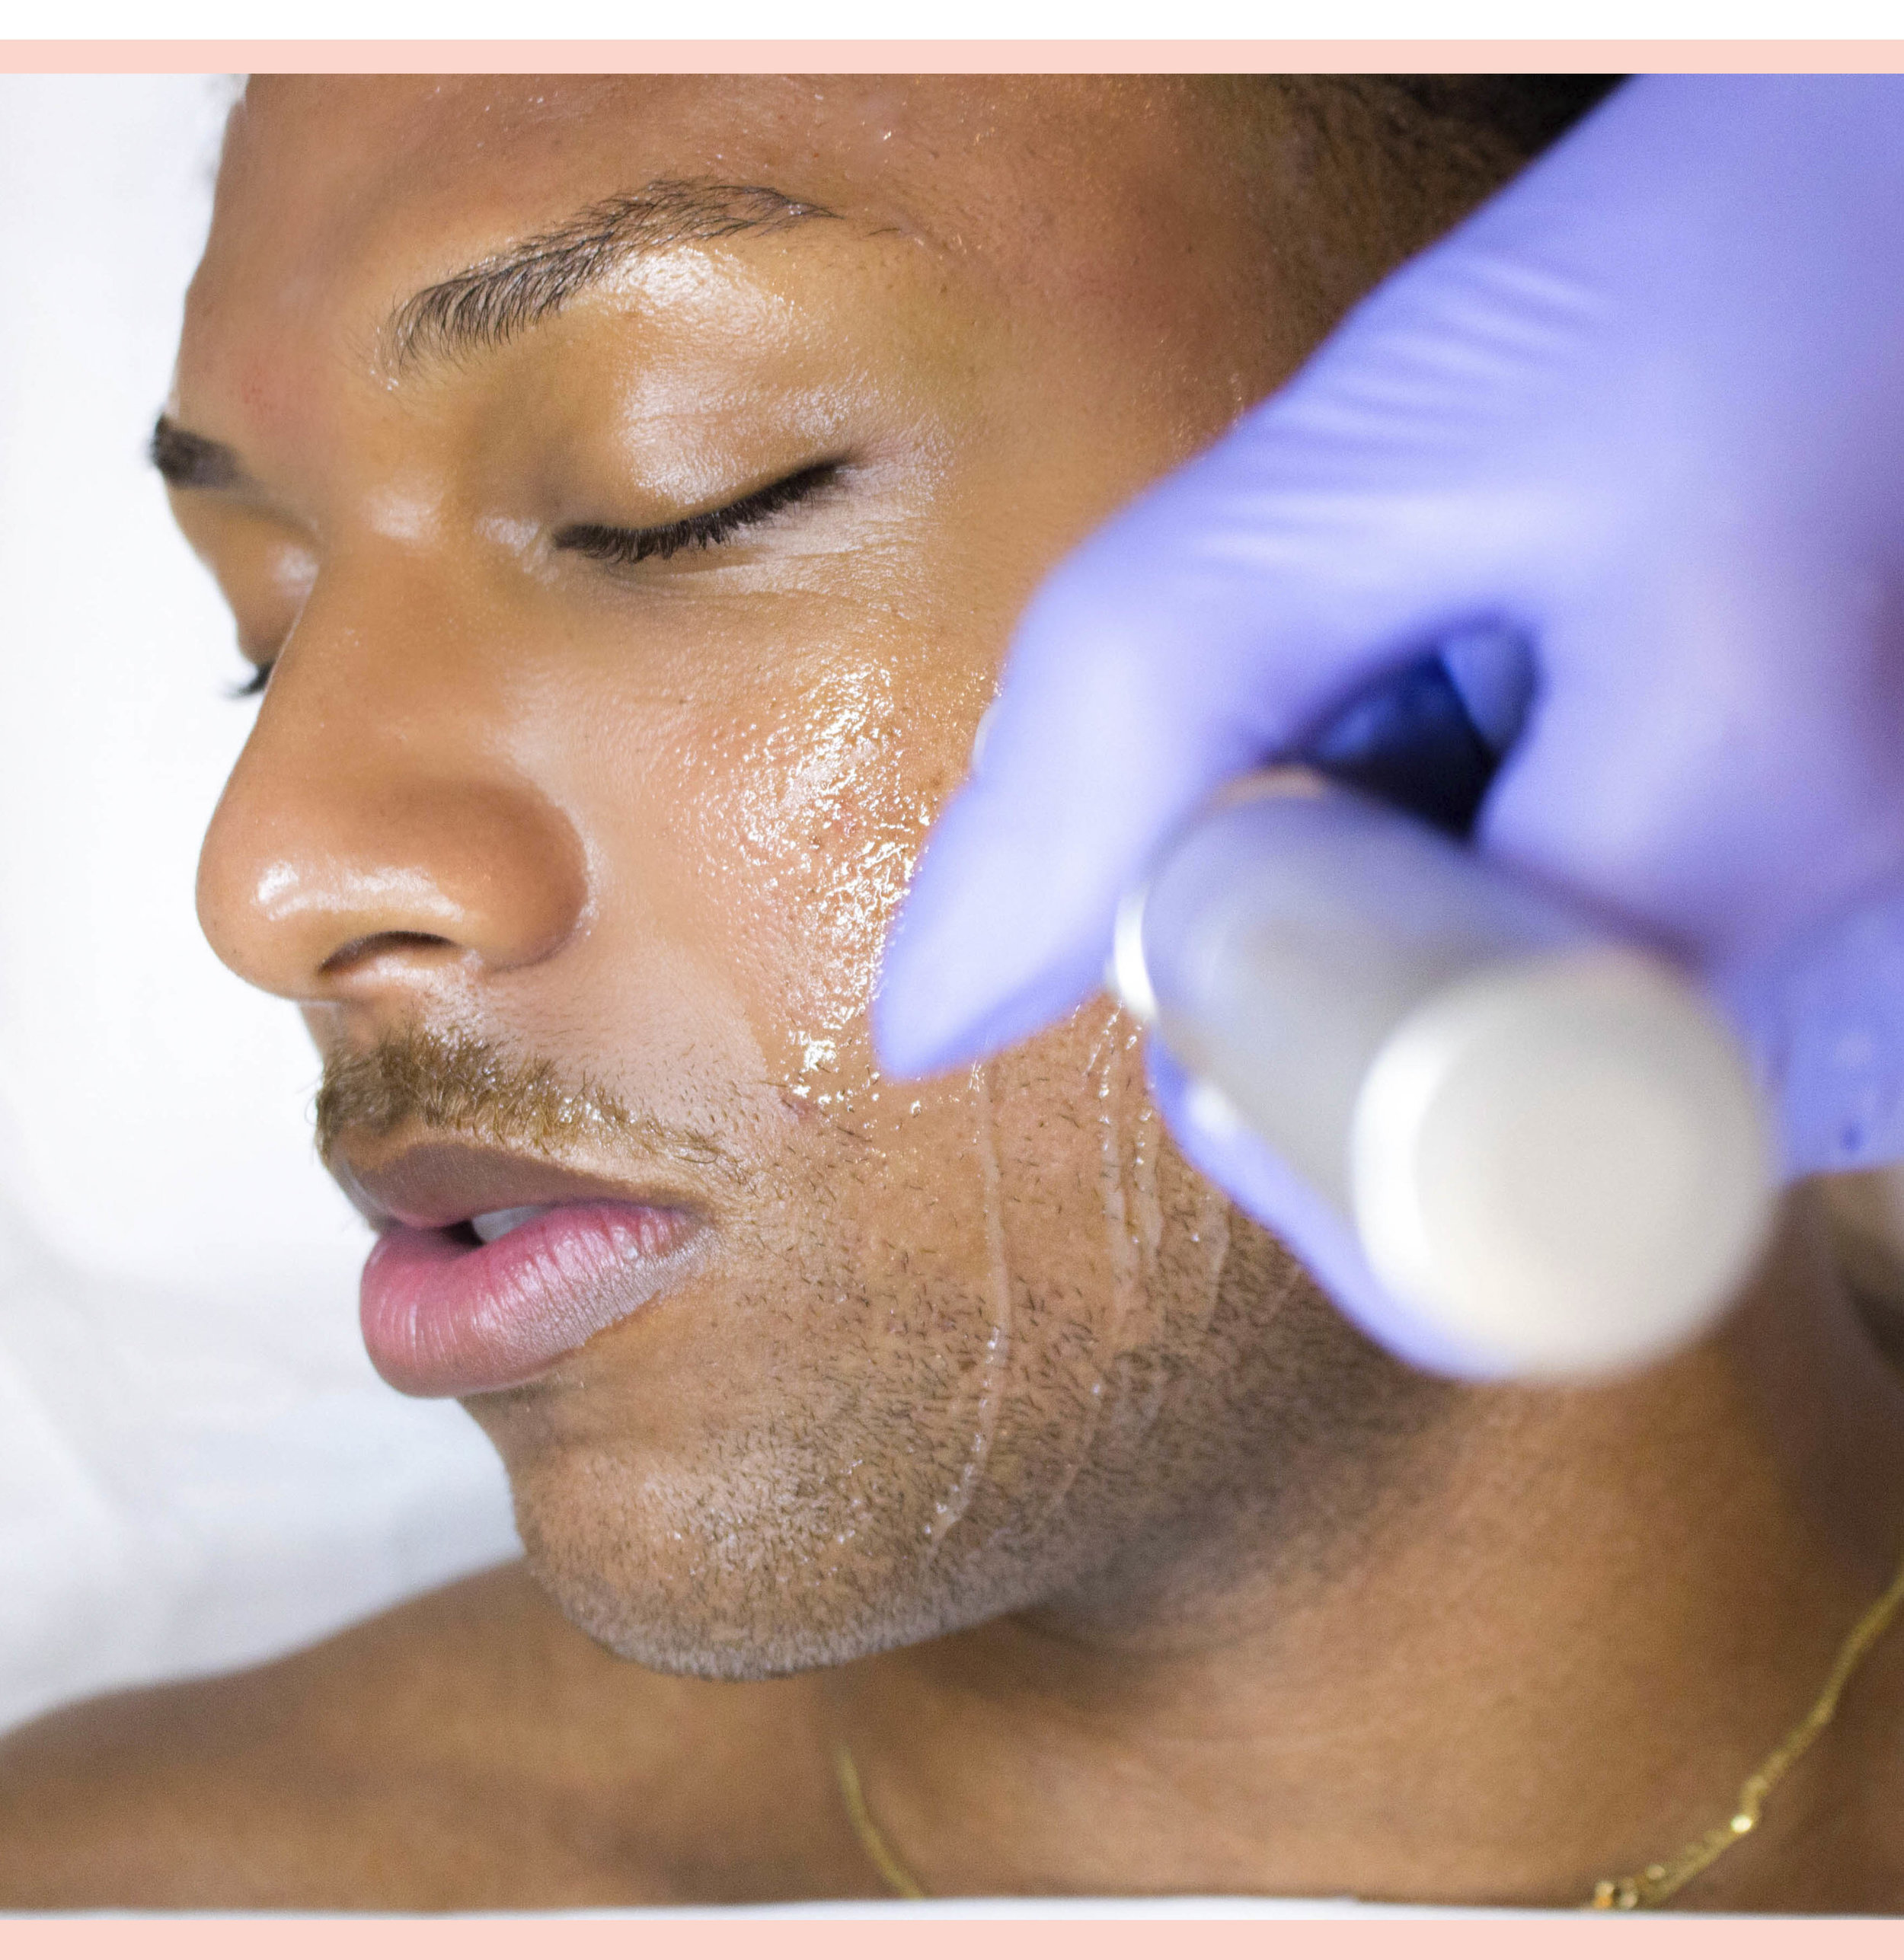 How does it work? - The process is simple; starting with a blood draw, the blood is than spun down in order to separate the plasma, than the PRP is injected back into your skin. This can be a safe and natural alternative to fillers and other skin rejuvenation procedures.The Eclipse MicroPen uses a sterile needle-tip containing 12 tiny micro-needles to create controlled micro-injuries to the skin. These micro-channels created by the treatment allow for optimal absorption of the Platelet Rich Plasma (PRP), enhancing their effects in the deeper layers of skin. The PRP has a concentration of platelets in the blood that are crucial to wound healing and during skin rejuvenation. PRP releases growth factors into the skin to expedite the body's own repair process and stimulate new collagen and elastin. Patients typically notice an immediate glow, but visible improvement will take about 2-4 weeks and can continue for up to 6 months. A series of 4-6 treatments spaced 6 weeks apart is ideal for optimal results.